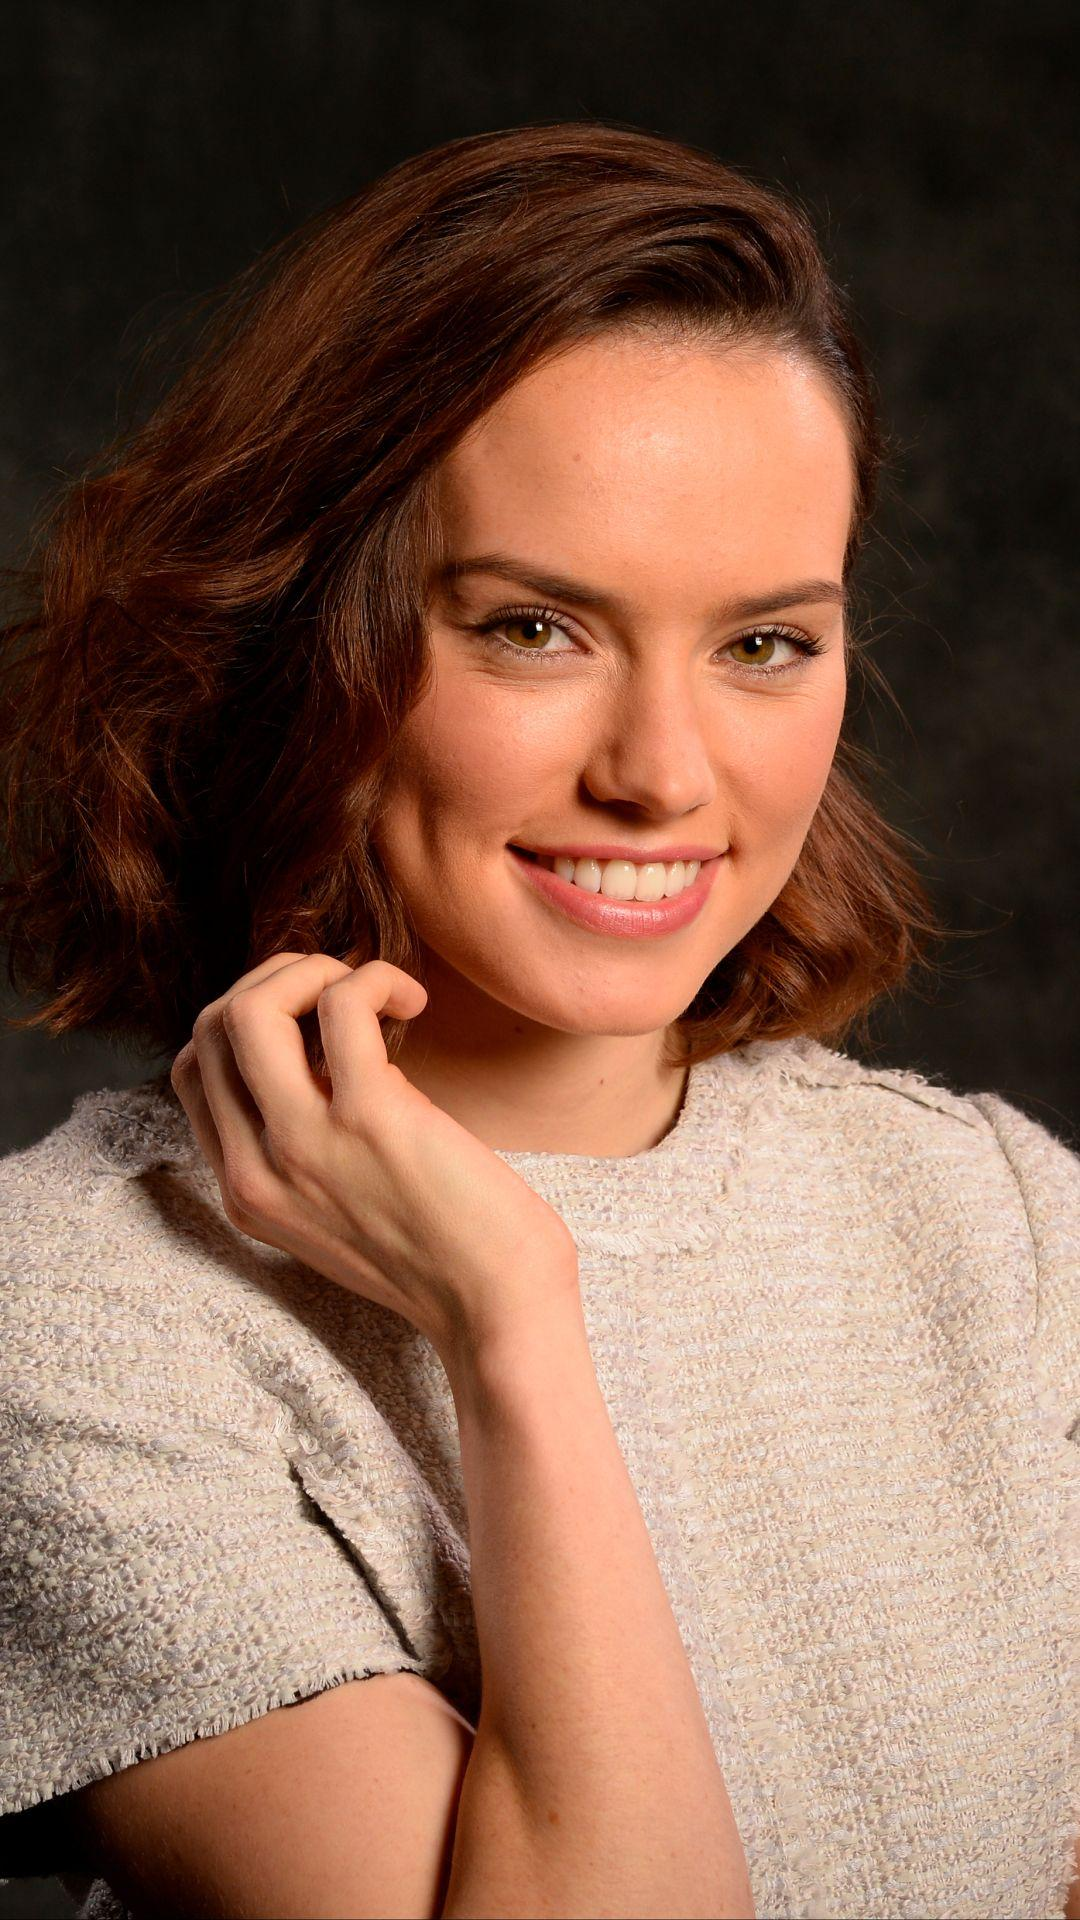 Celebrity/Daisy Ridley (1080x1920) Wallpaper ID: 688123 - Mobile Abyss